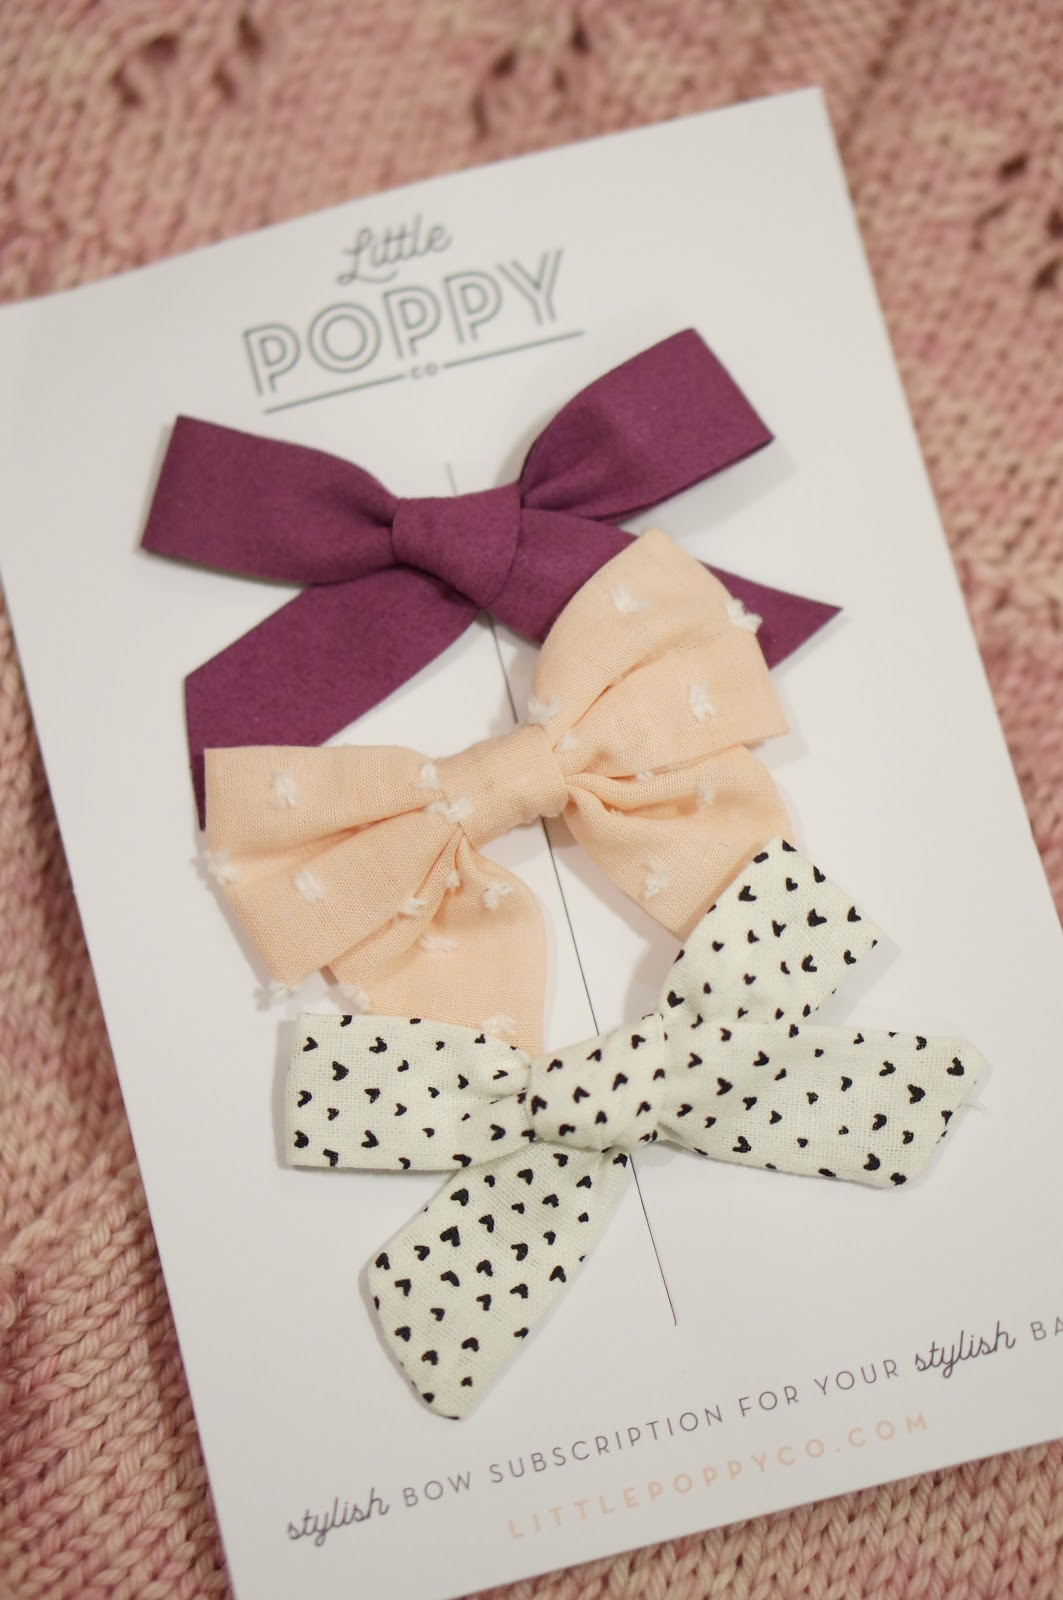 Popular North Carolina style blogger Rebecca Lately shares Little Poppy Co bows for February. Read more here!